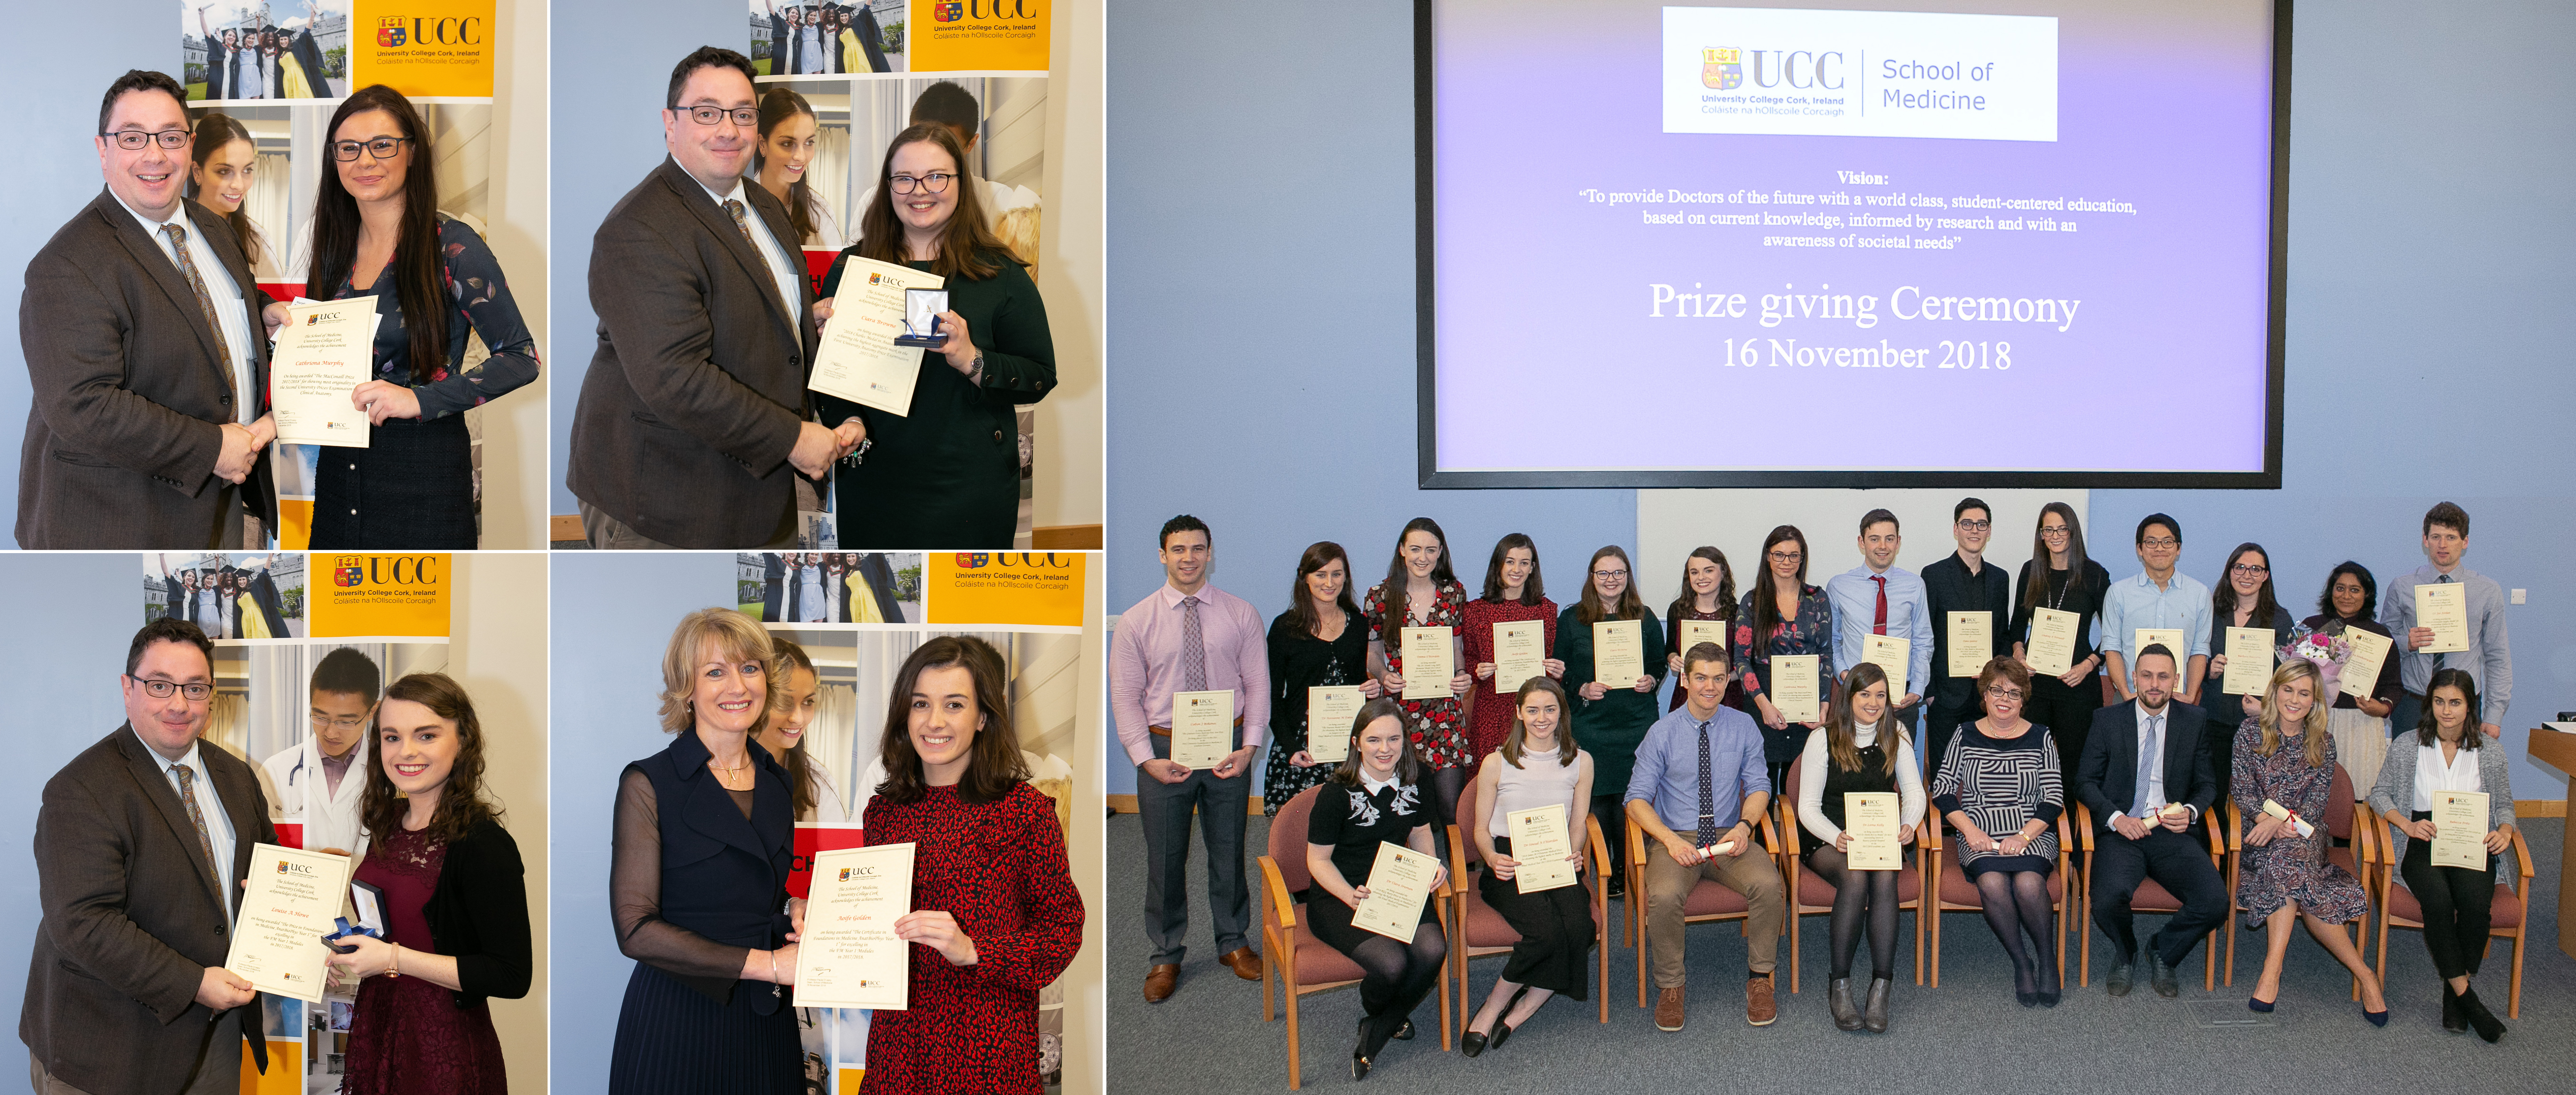 UCC School of Medicine Annual Prizegiving Ceremony 2018